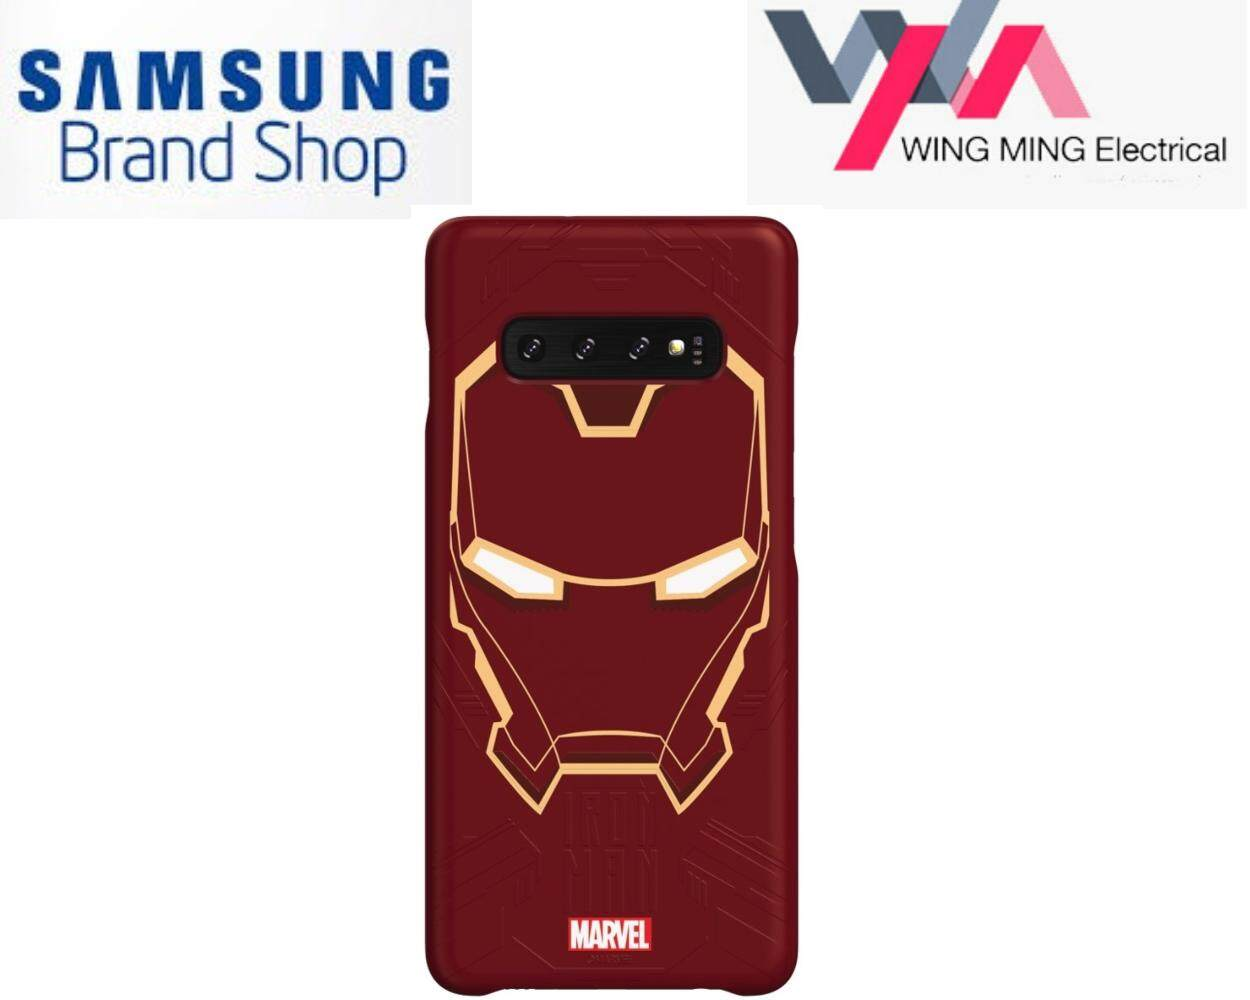 [ORIGINAL] Samsung Galaxy S10 S10+ Galaxy Friends Marvel Smart Covers